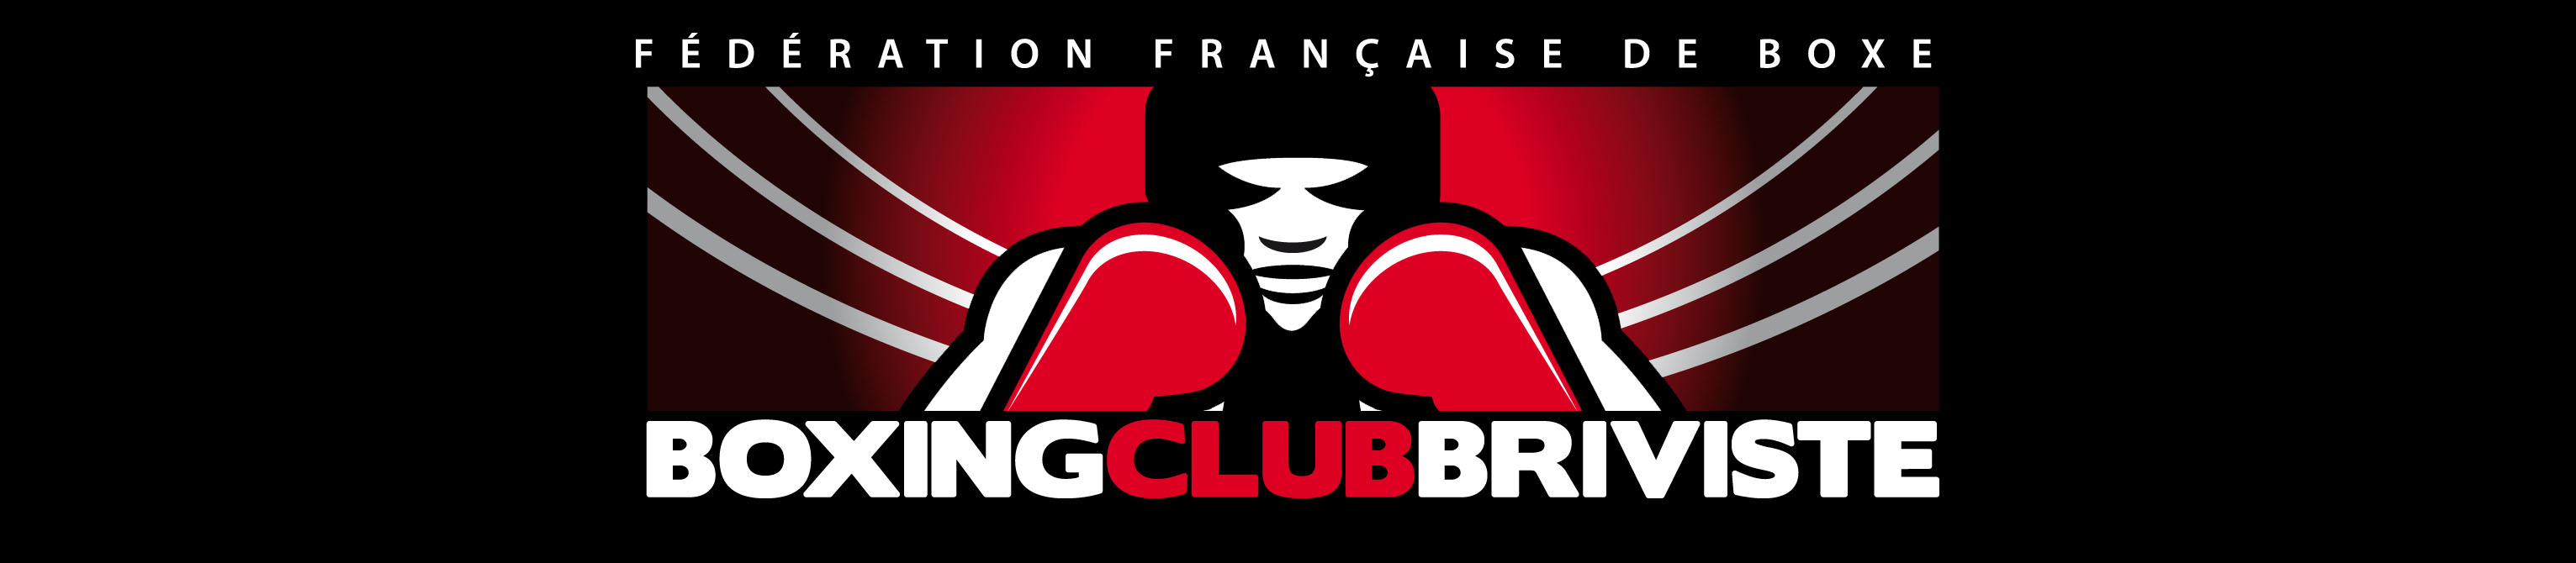 BOXING CLUB BRIVISTE